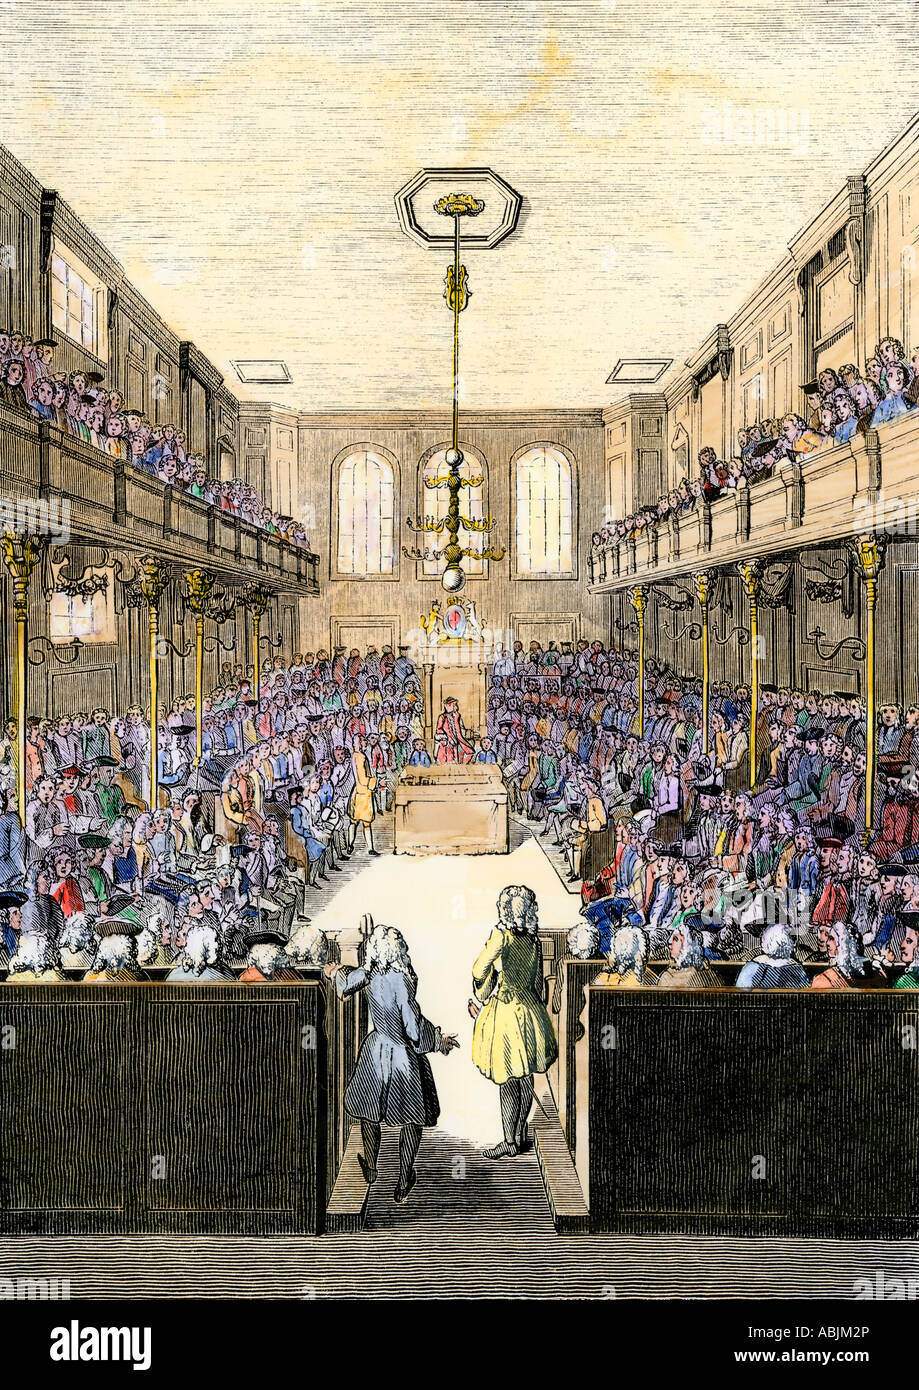 House of Commons in session during the reign of King George II. Hand-colored woodcut - Stock Image